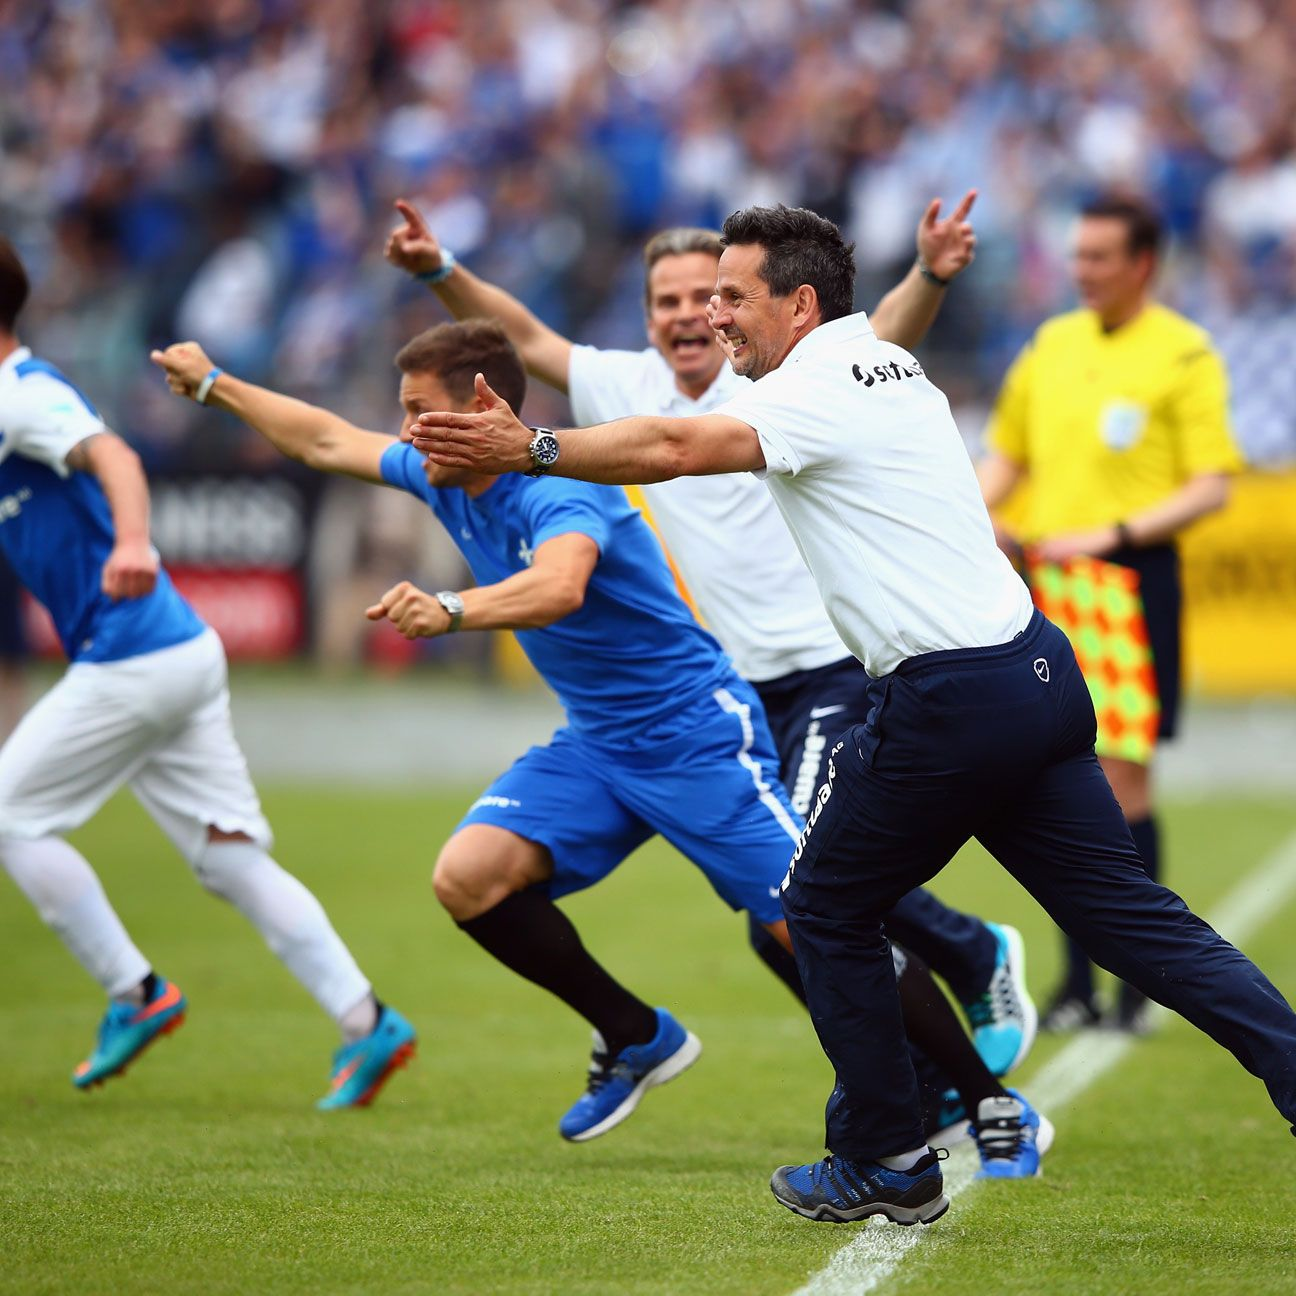 Darmstadt stunned experts and onlookers alike by achieving promotion to the Bundesliga.